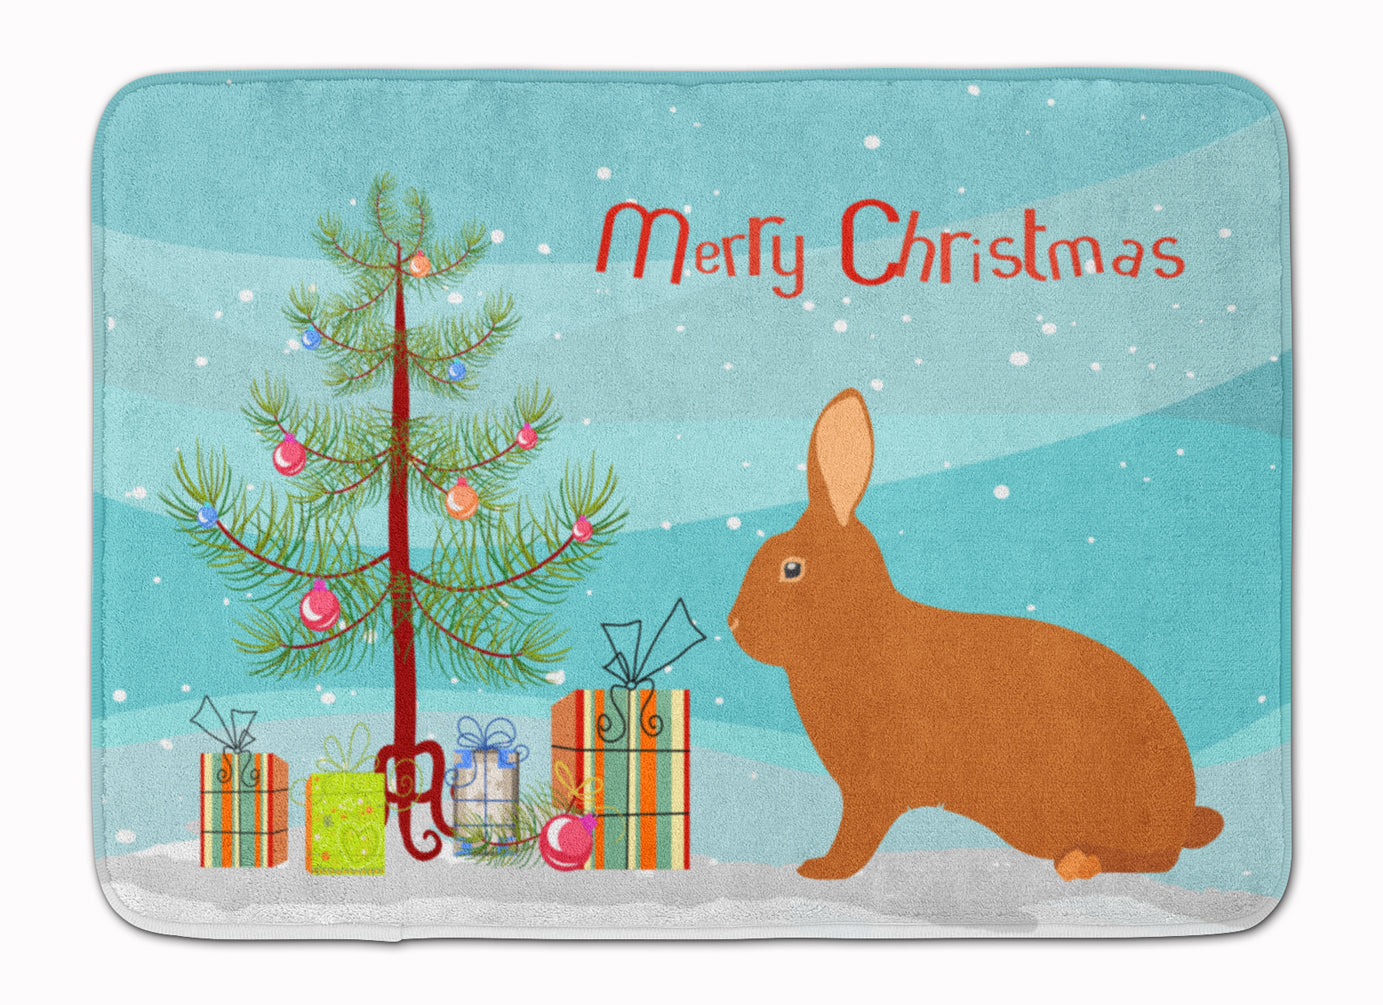 Rex Rabbit Christmas Machine Washable Memory Foam Mat BB9336RUG by Caroline's Treasures